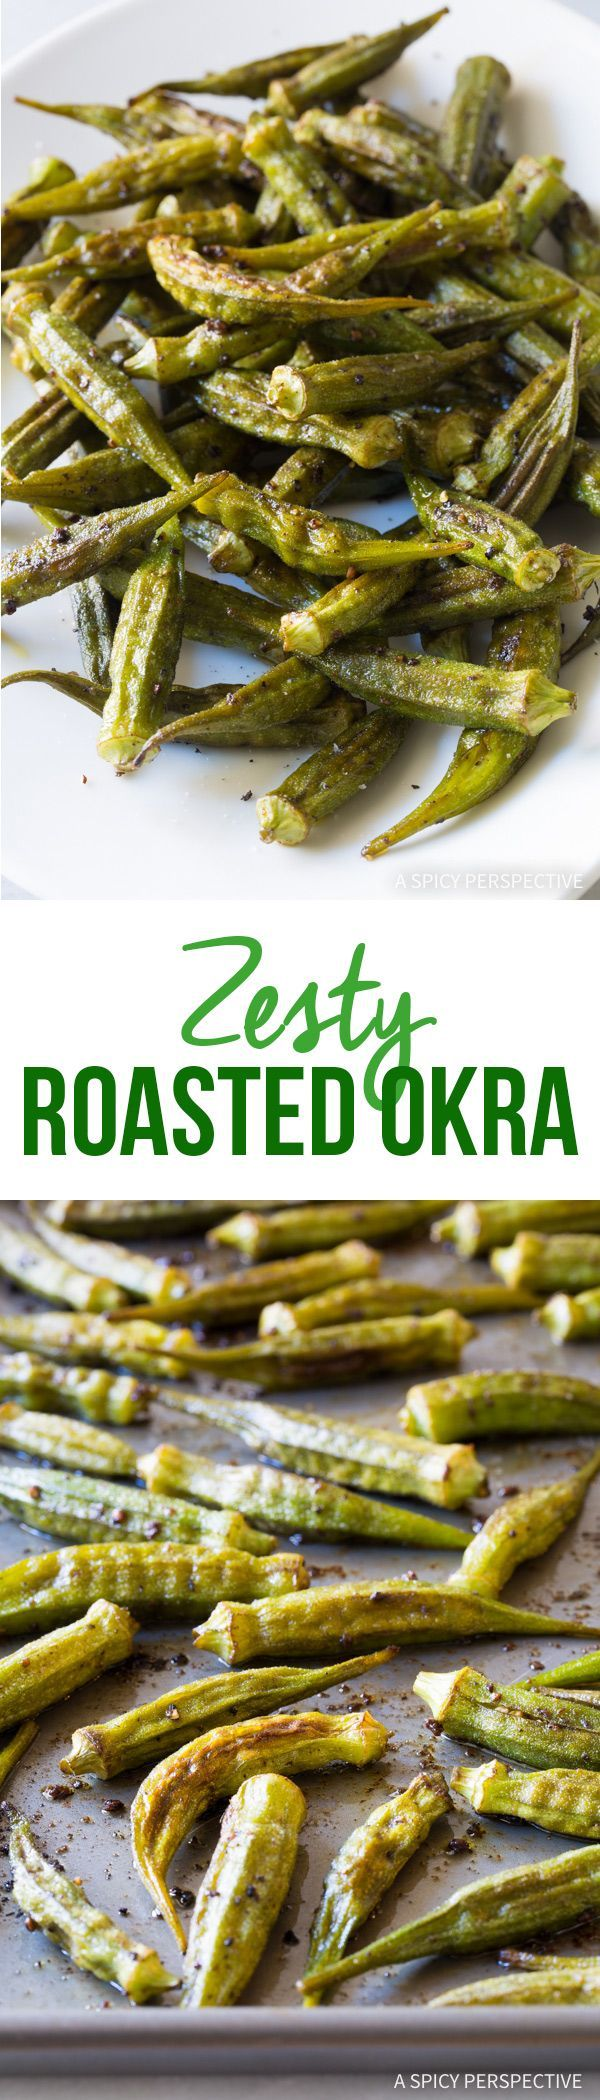 Zesty Roasted Okra Recipe – Fresh summer okra roasted on a sheet pan  with cumin, ancho chili powder, and garlic. This simple healthy side  dish is fantastic!